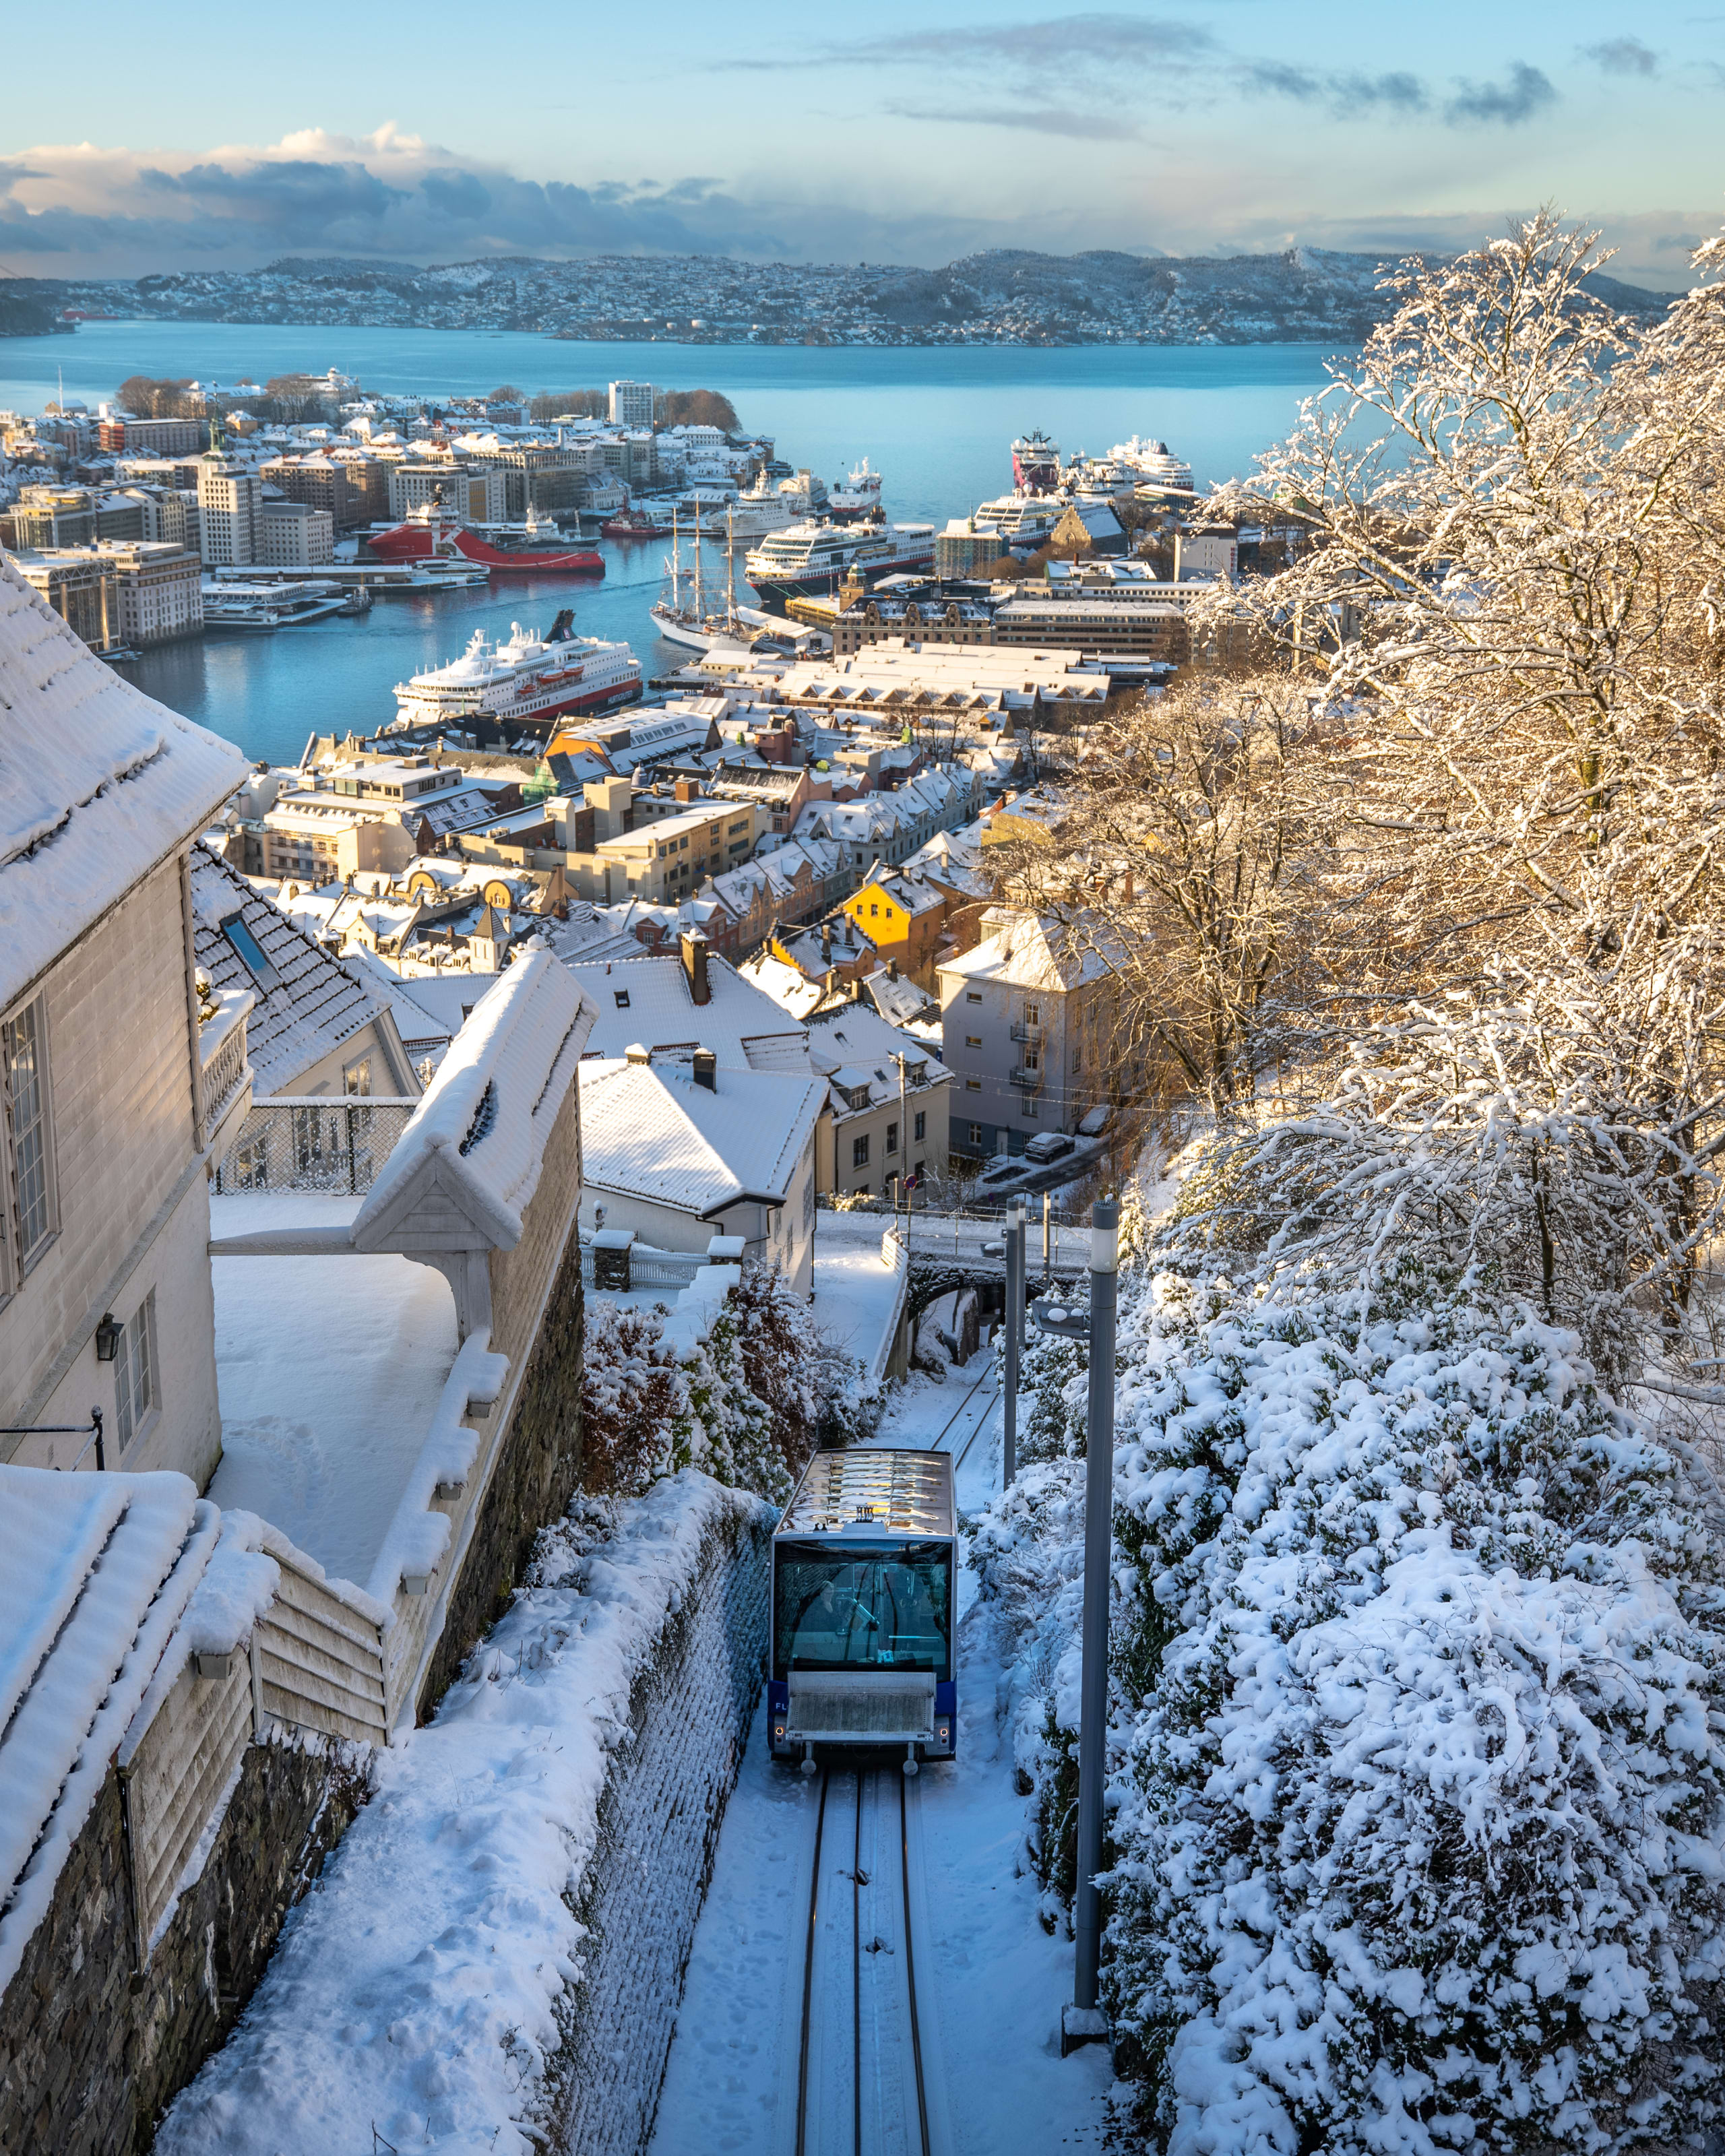 Fløibanen in Bergen at winter